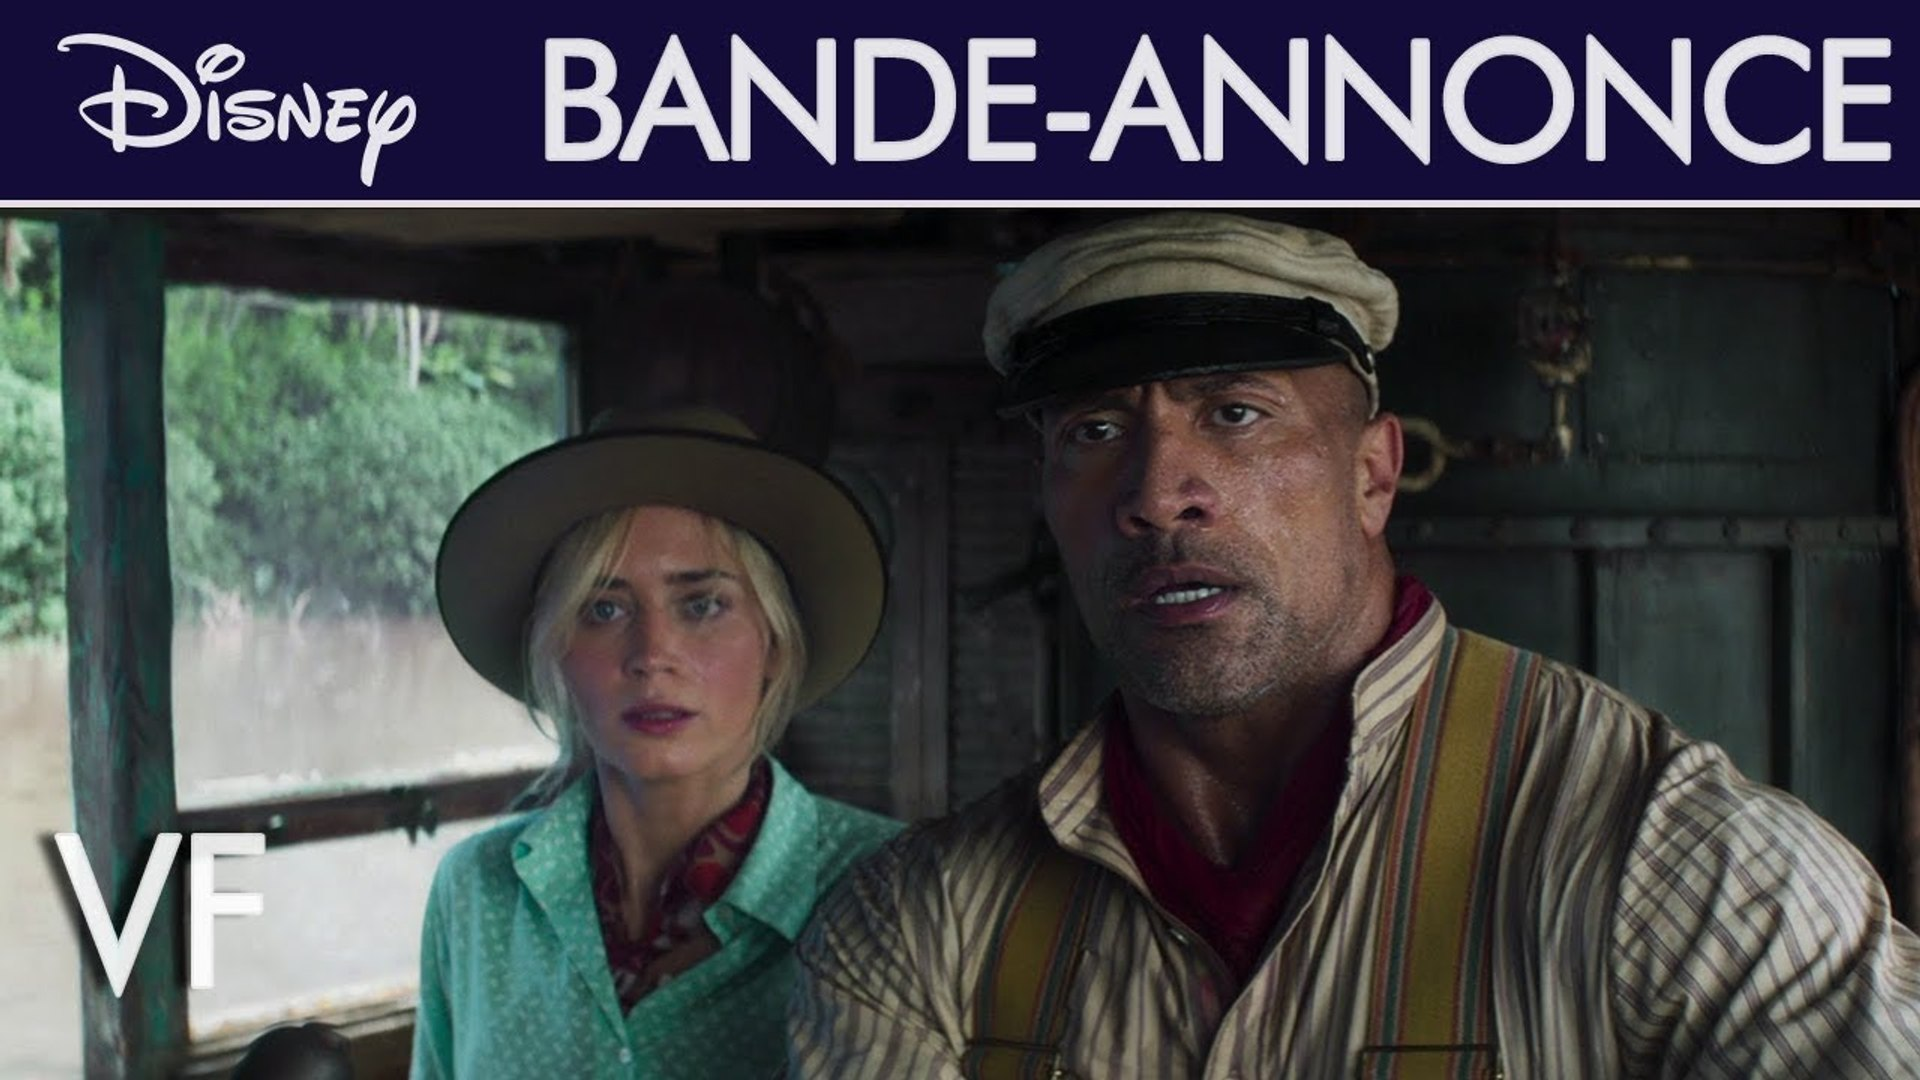 Jungle Cruise Bande-annonce VF (8) Dwayne Johnson, Emily Blunt Disney